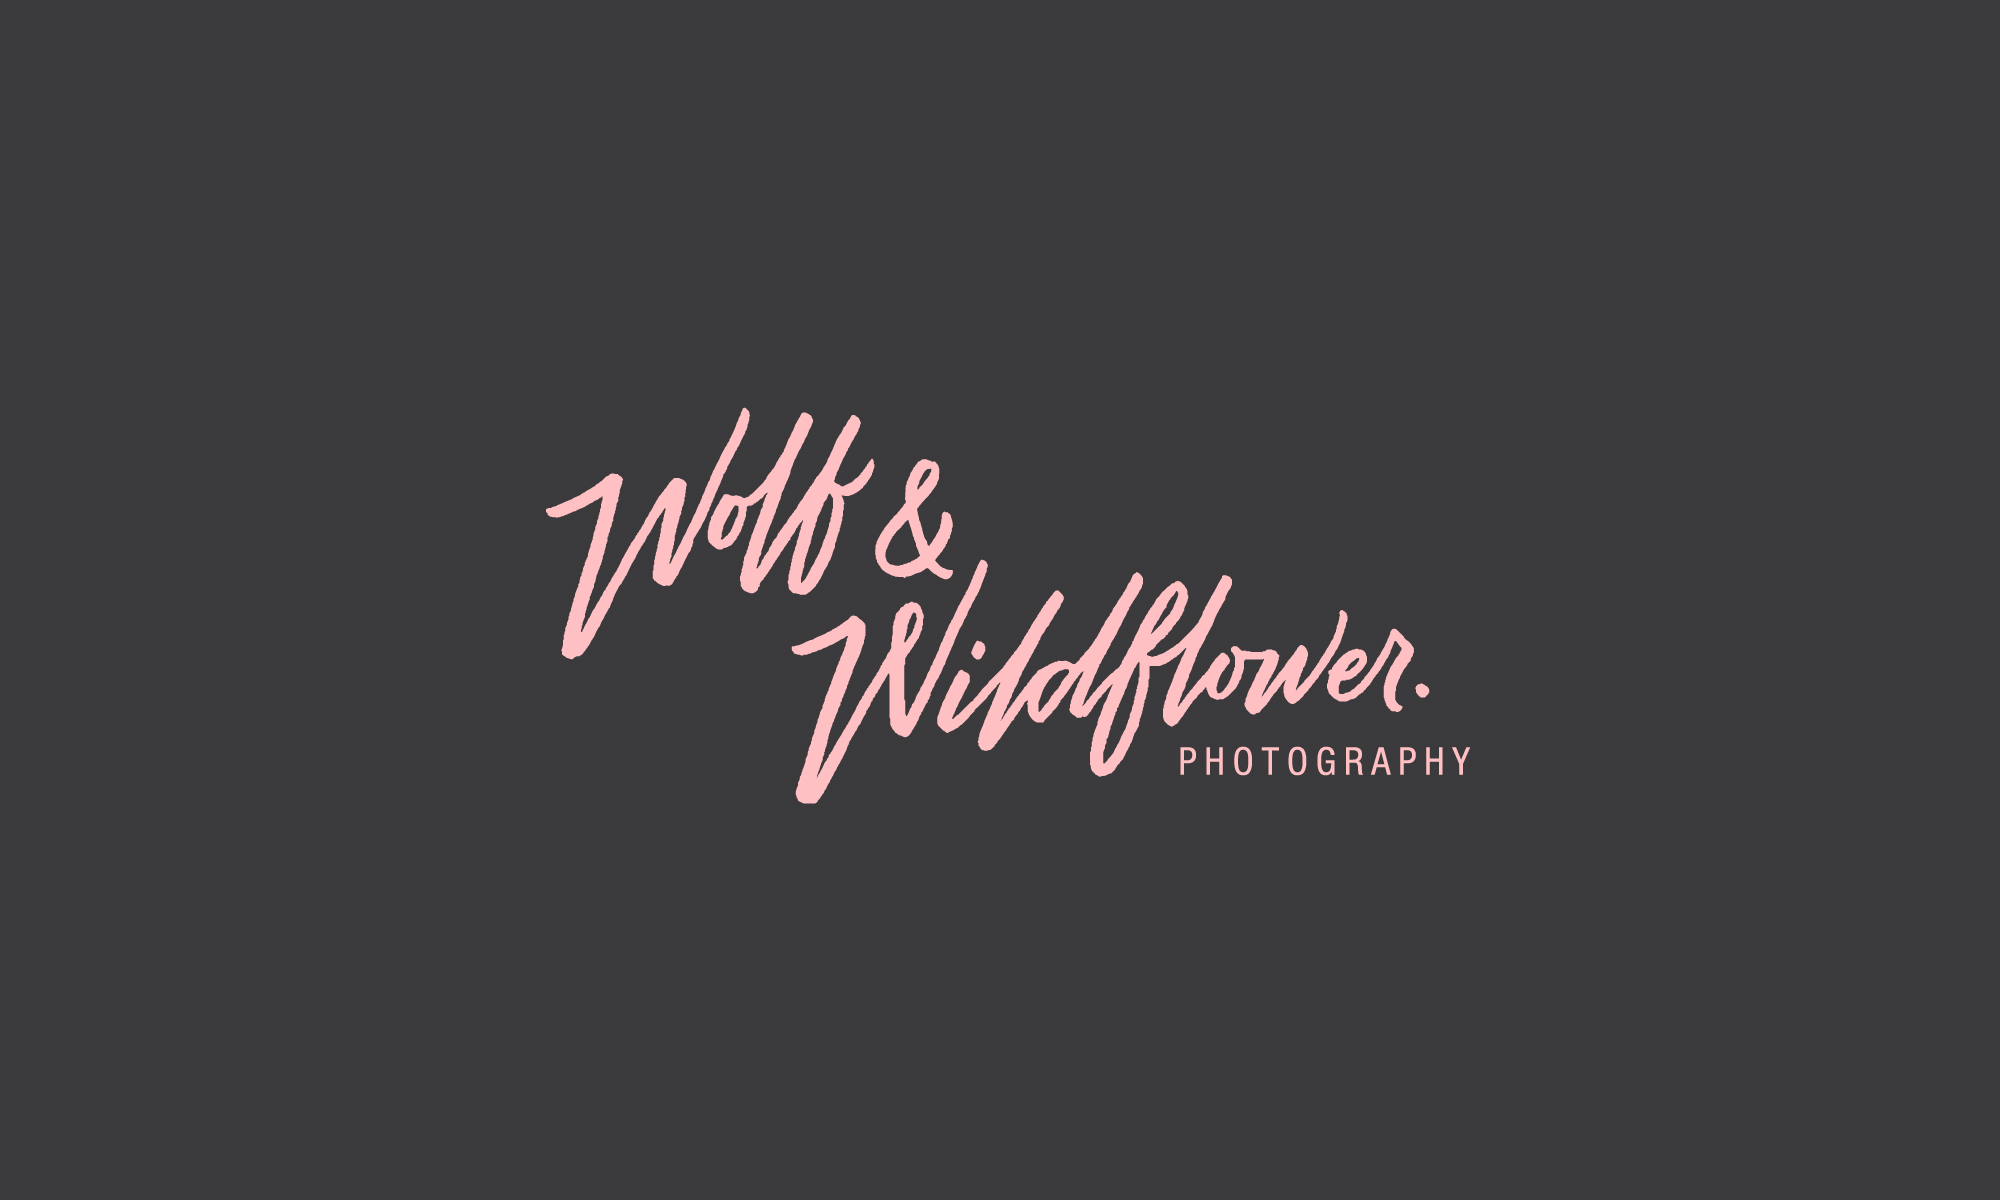 Wolf & Wildflower Photography